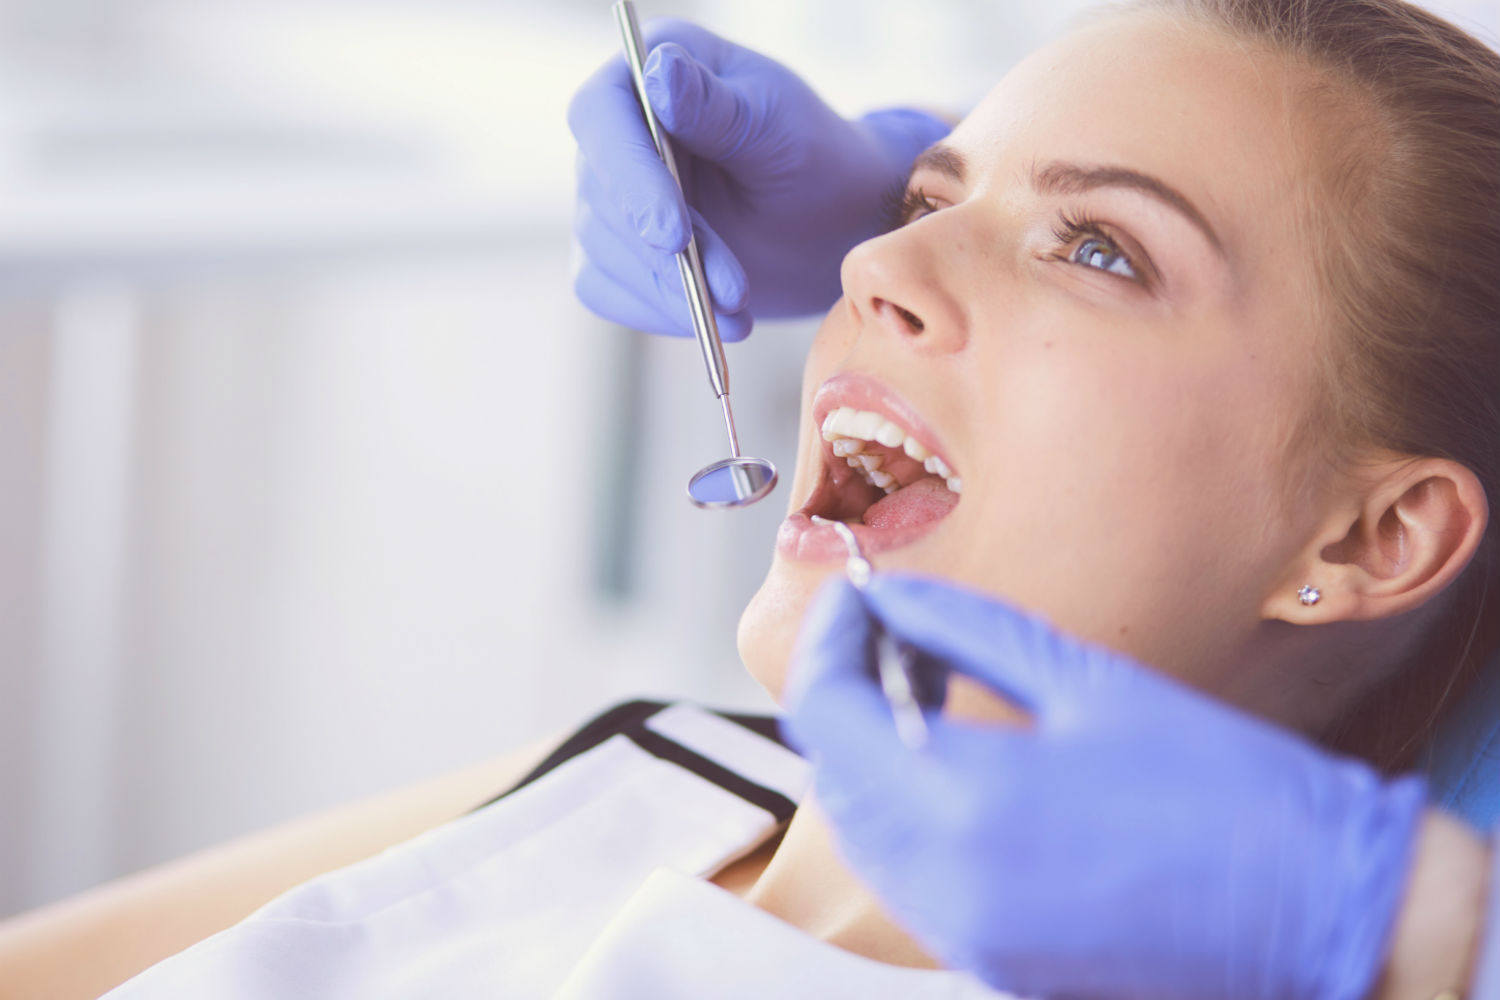 How Does A Healthy Mouth Help Prevent COVID-19?